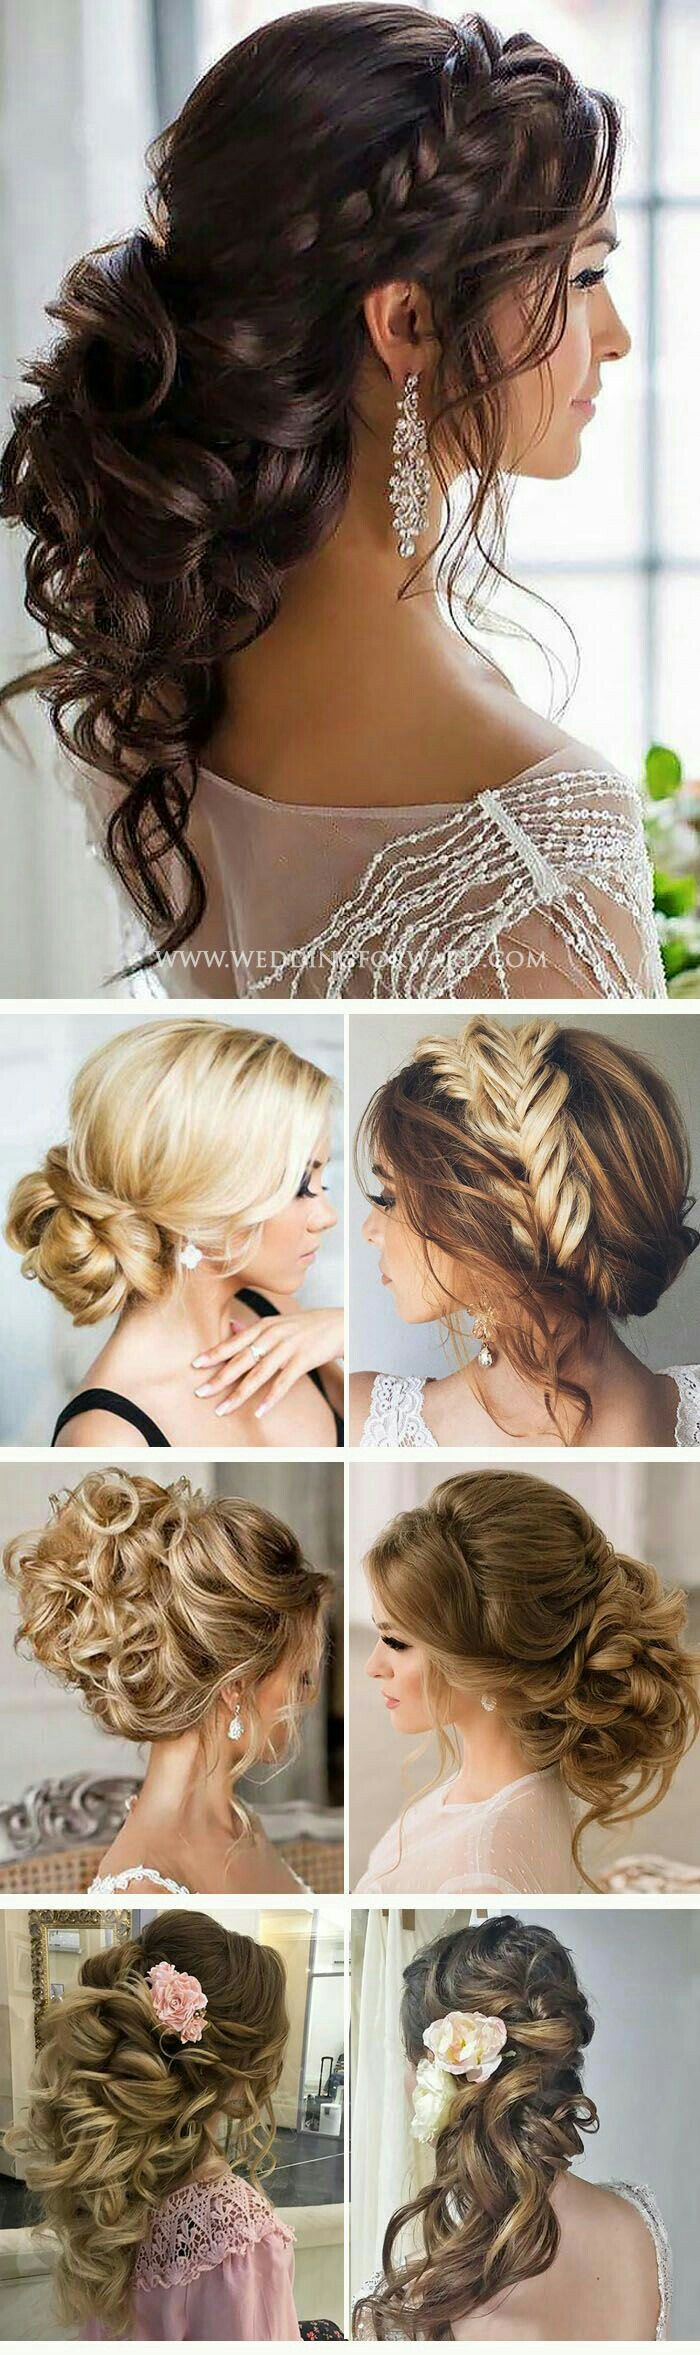 Updos! Wedding hair inspiration!! find your dream wedding gown www.customdreamgowns.com